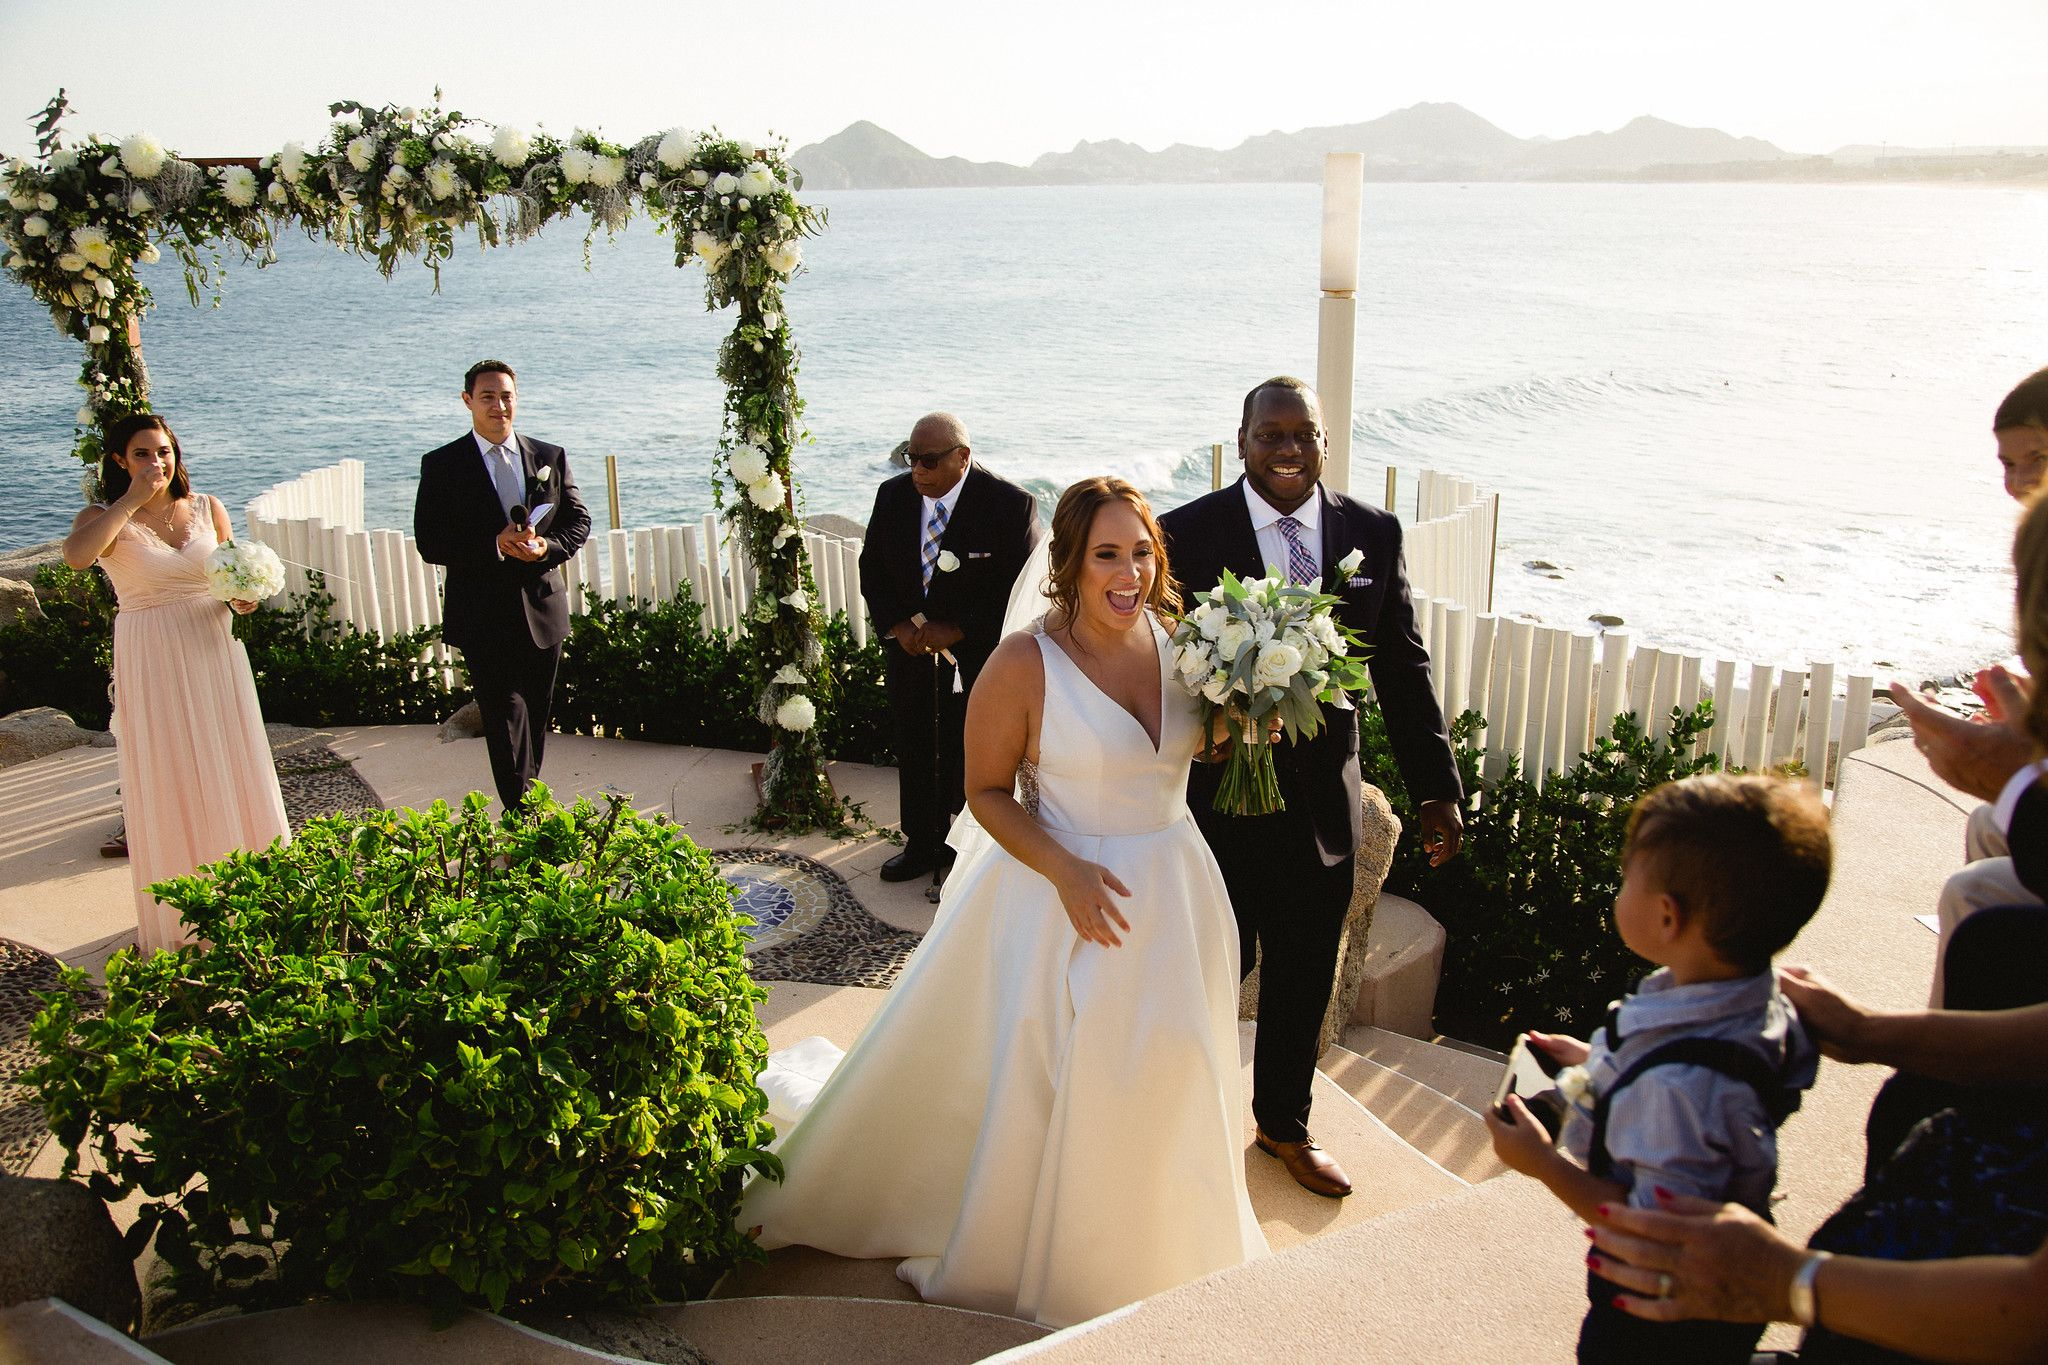 Bride and groom after wedding ceremony at Wedding Venue in Cabo San Lucas Sunset da Mona Lisa. Wedding planning and design by Cabo Wedding Services